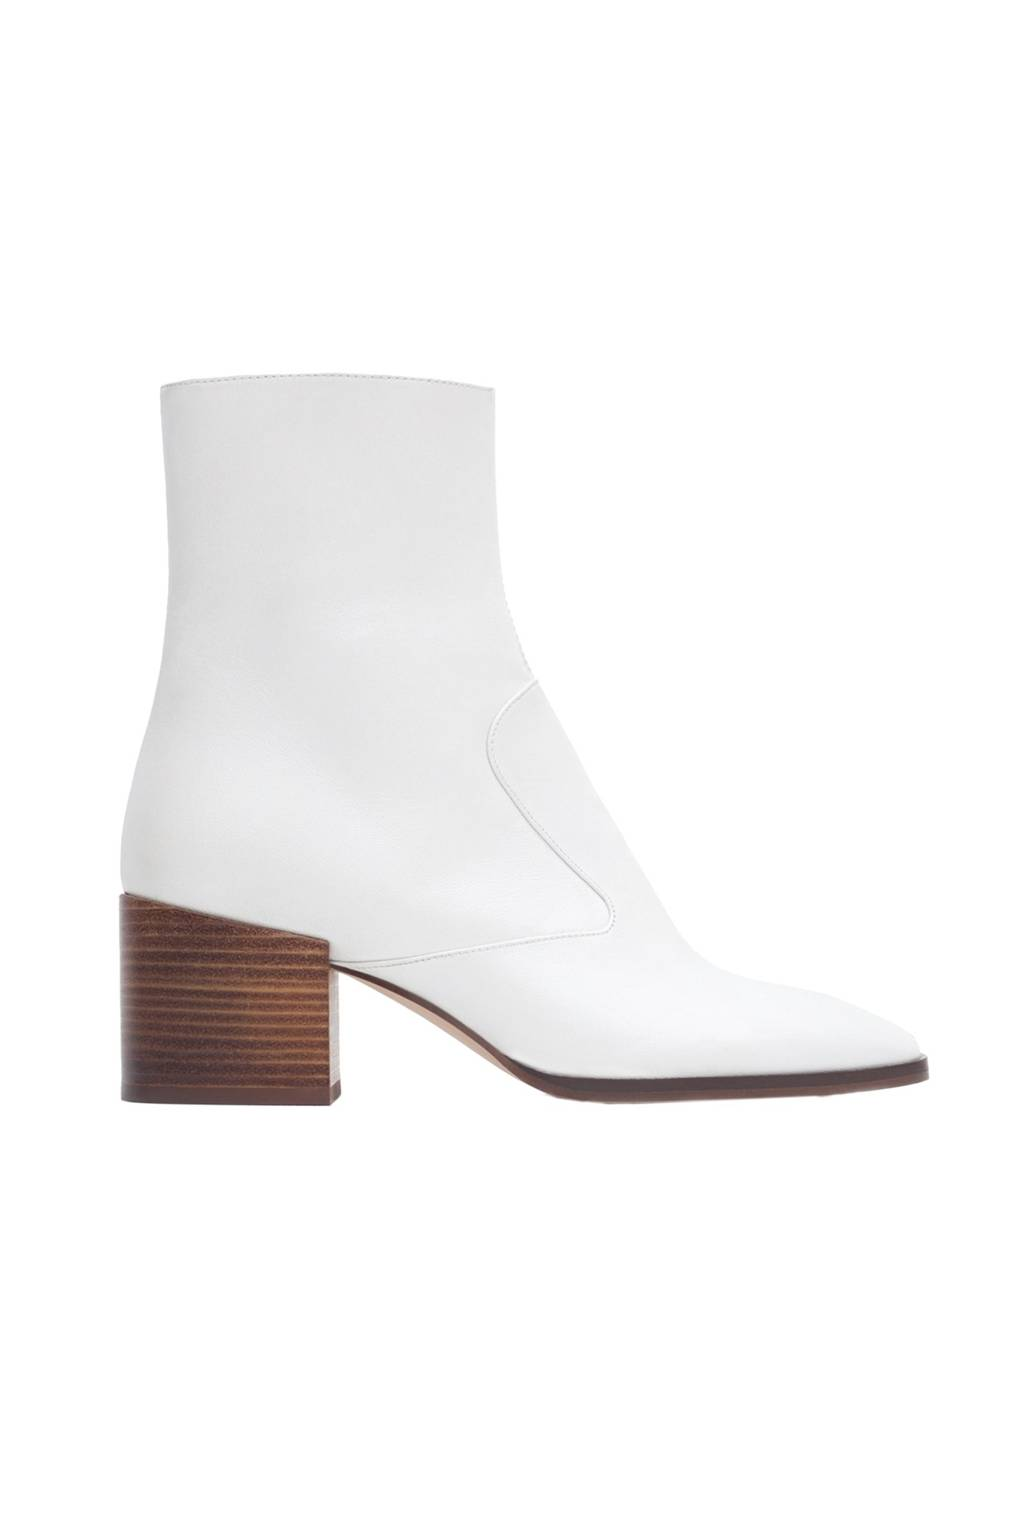 47c62756812e The Vogue Edit To Buy Now  10 Best White Ankle Boots